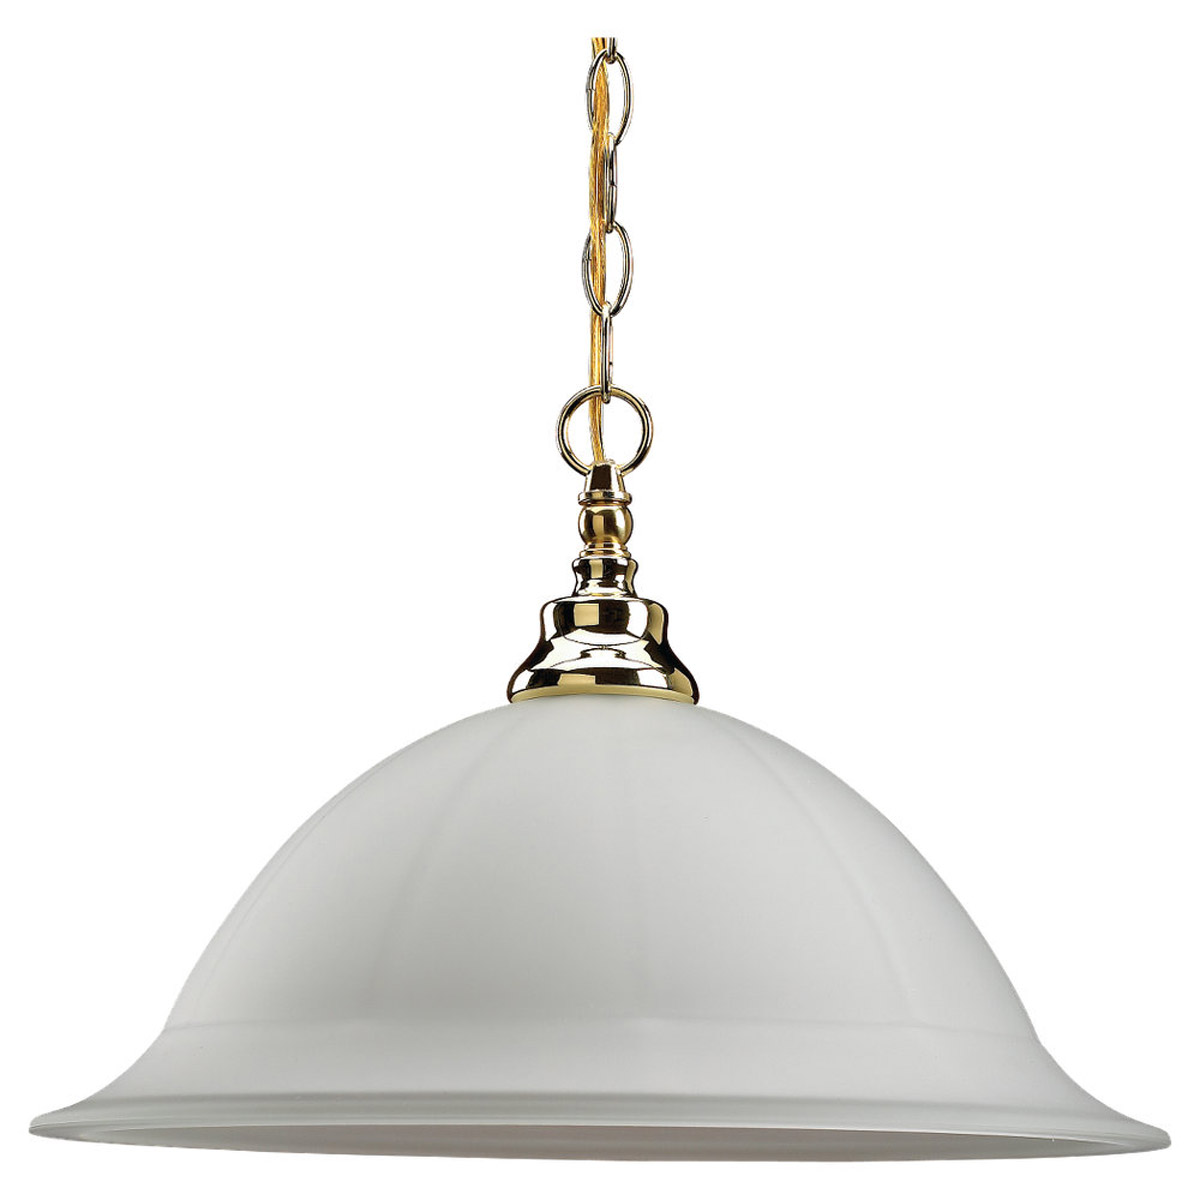 Sea Gull Lighting Canterbury 1 Light Pendant in Polished Brass 65050-02 photo